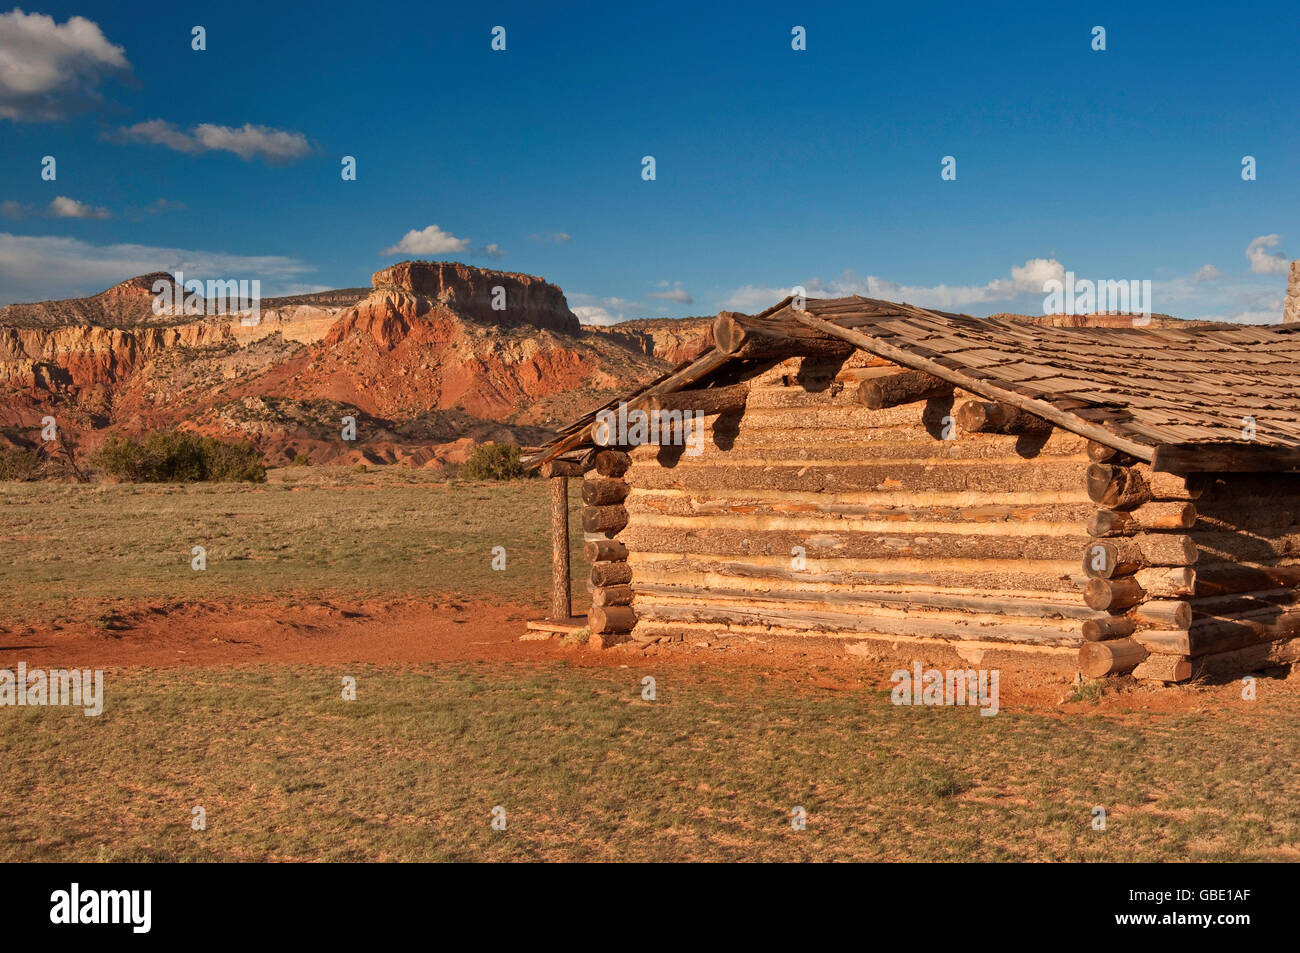 Log cabin at City Slickers movie set at Ghost Ranch near Abiquiu, New Mexico, USA - Stock Image